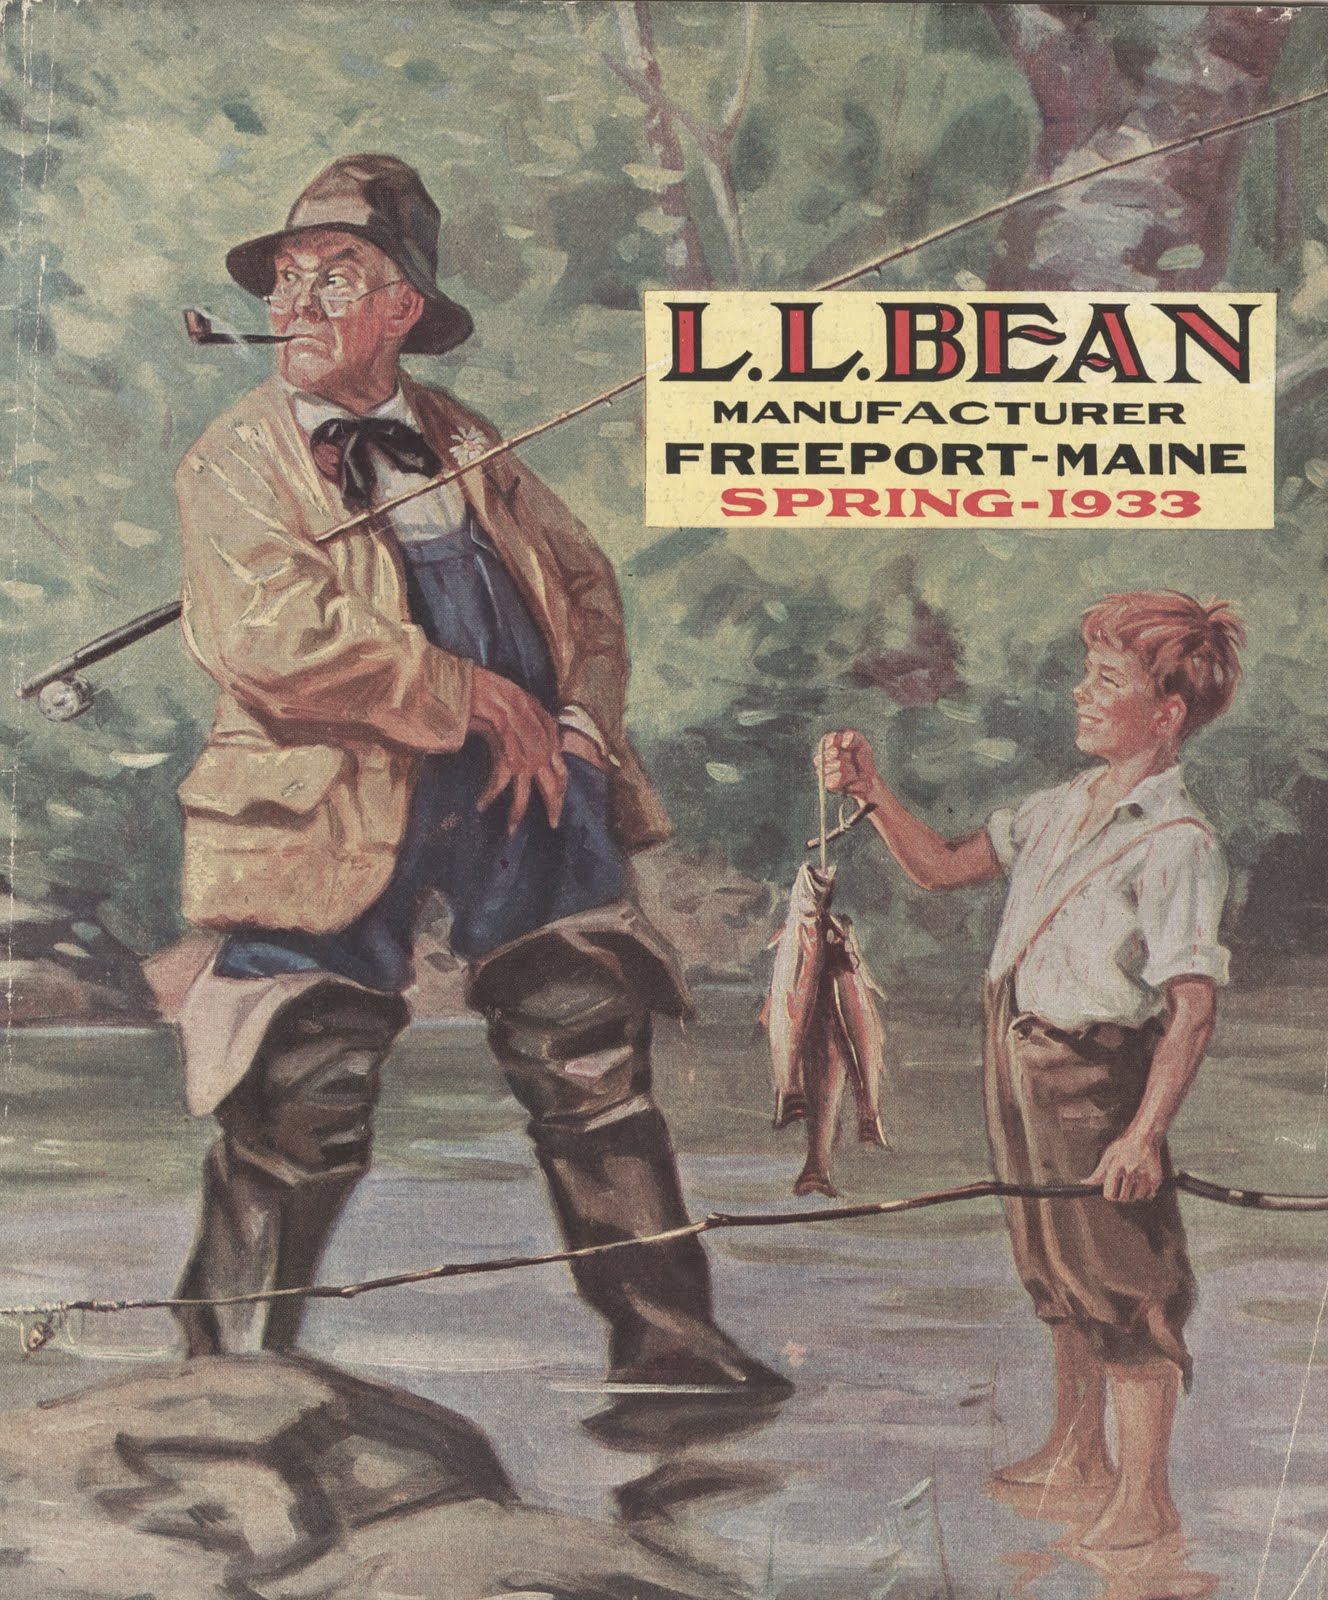 L l bean order form - I Just Received My Ll Bean Spring 1933 Catalog In The Mail Egregious Delivery Delays I M Forwarding Along To Archival Readers In Need Of Last Minute